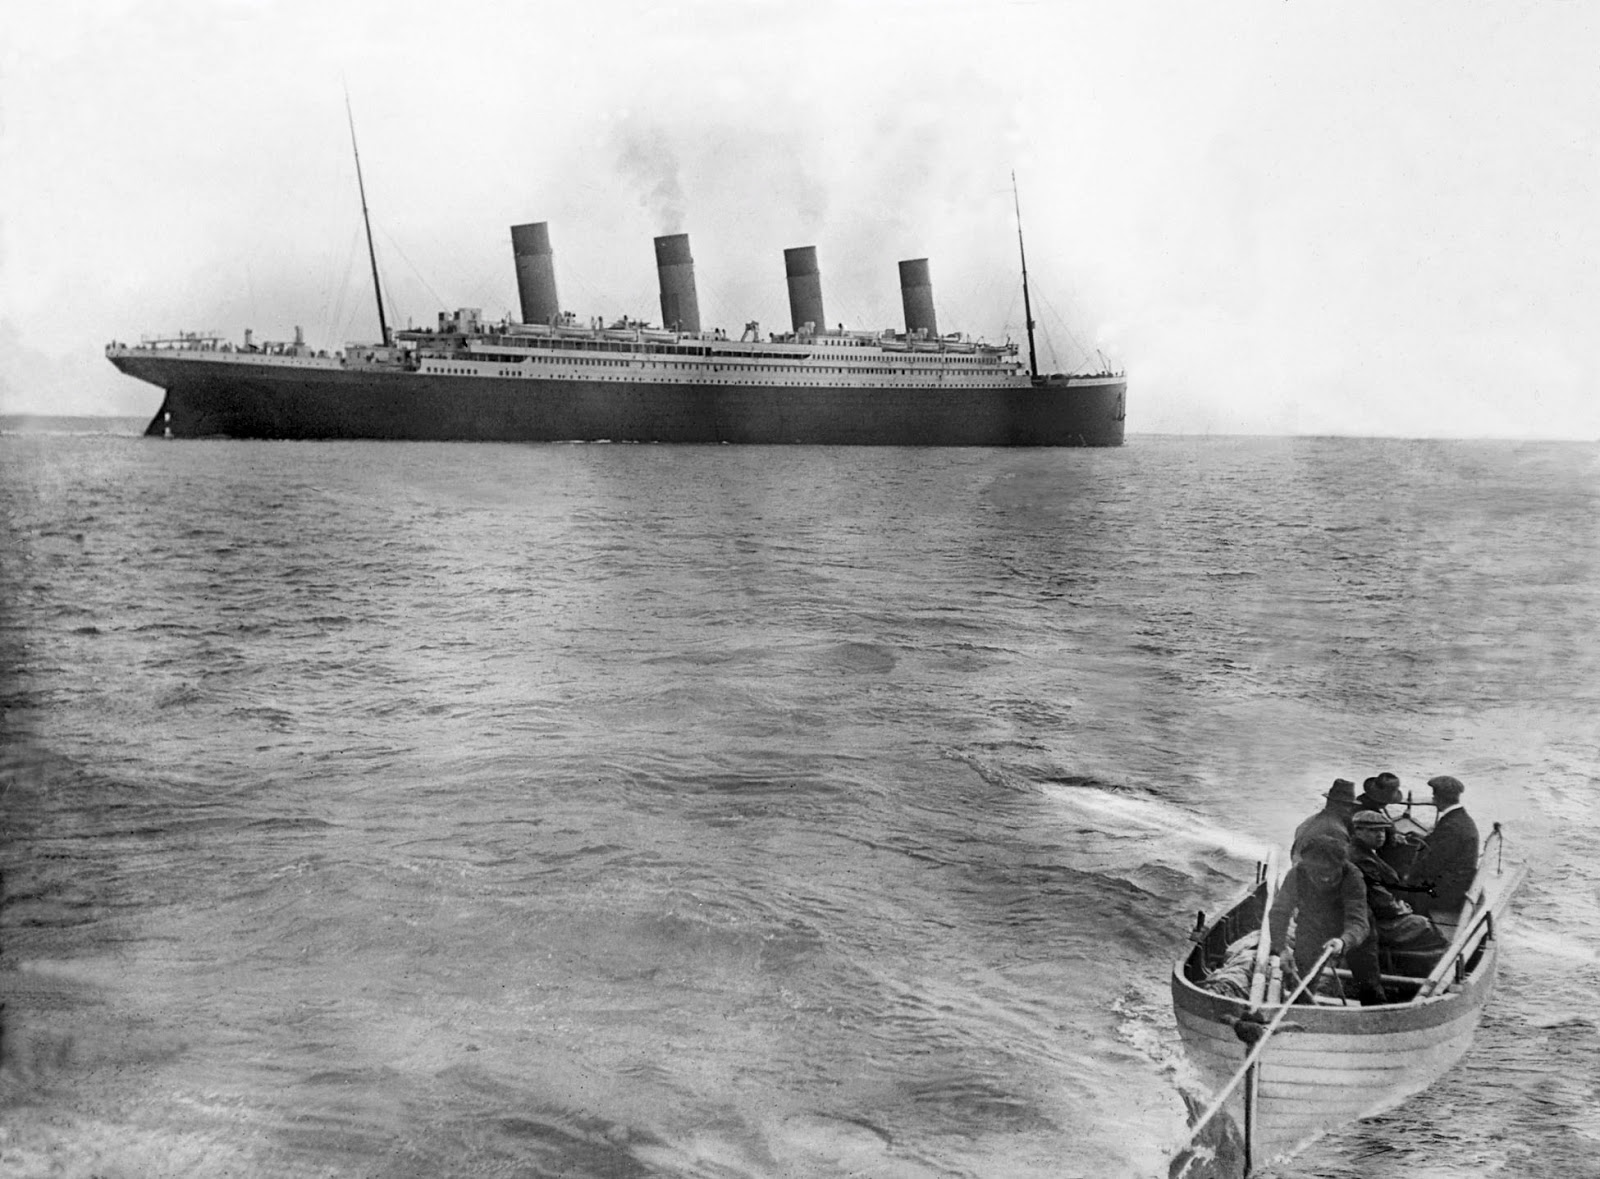 The last picture of the Titanic, 1912